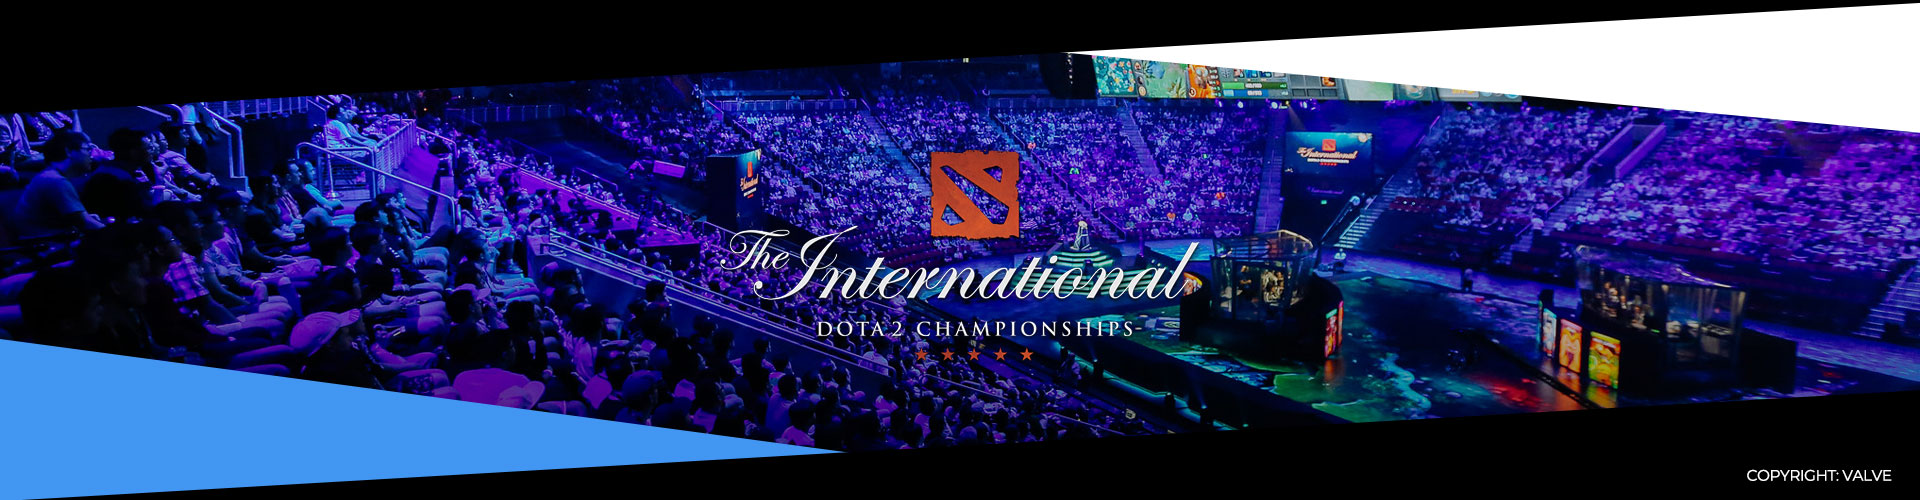 Eventsida om The International 9. Lagen, prispotten och formatet.